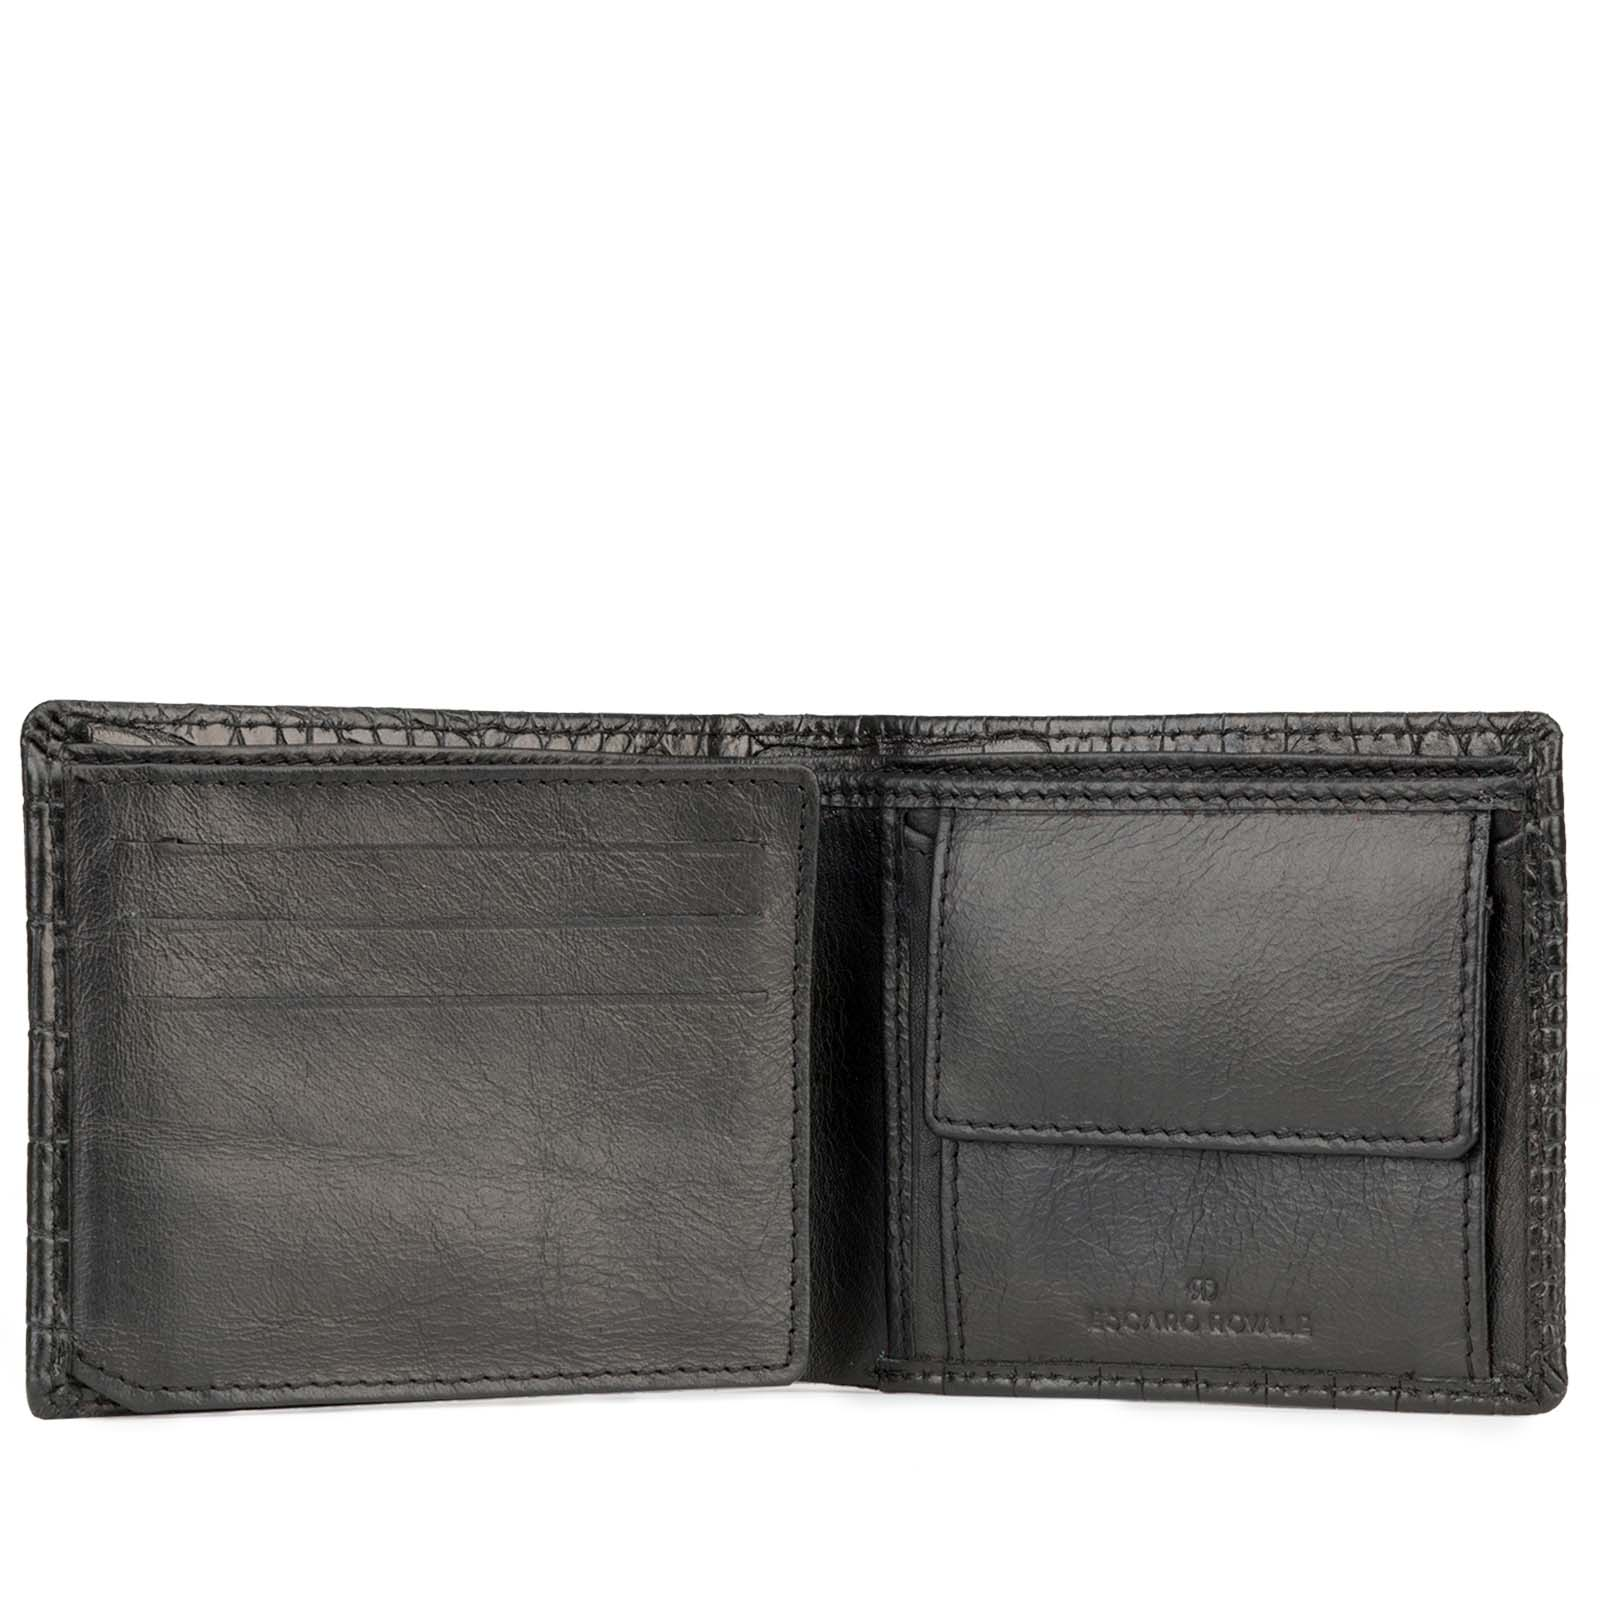 Black Croco-Print Leather Mens Wallet